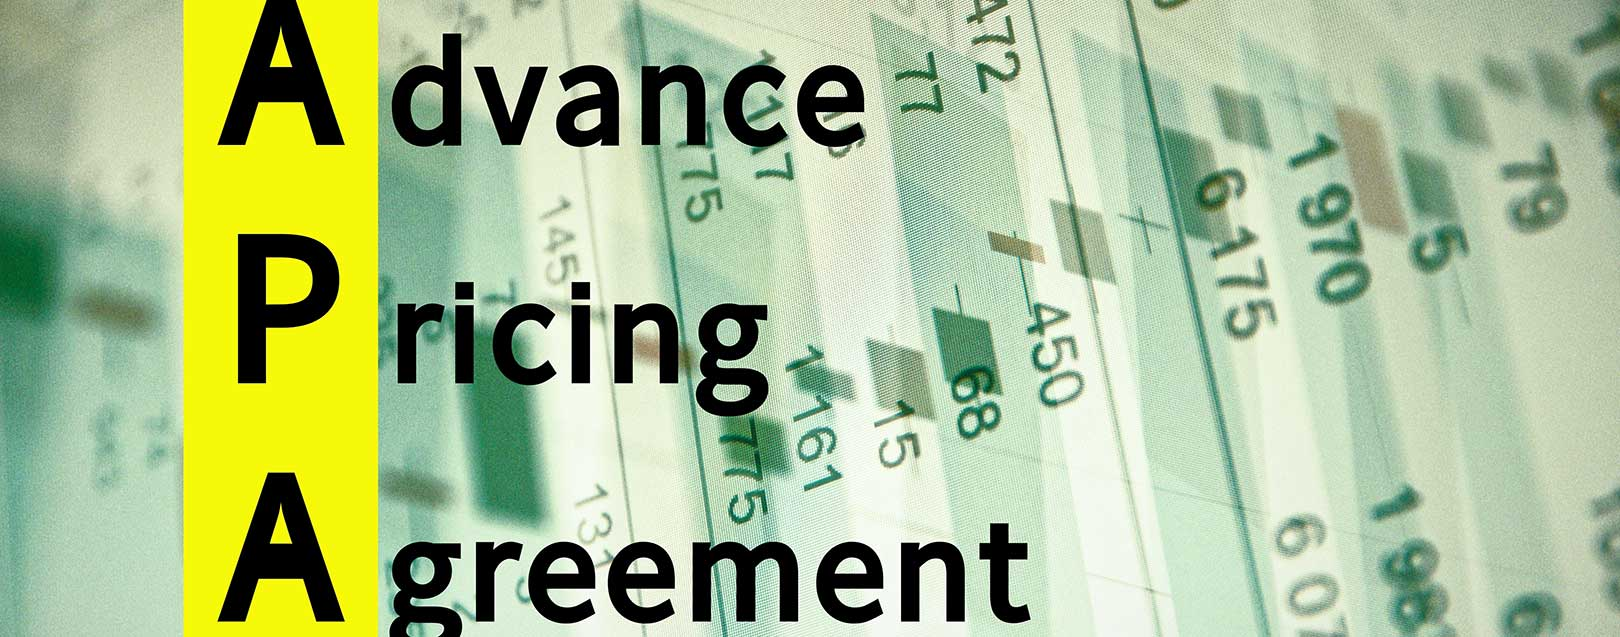 Cbdt Signs Advance Pricing Agreement With Japanese Firm